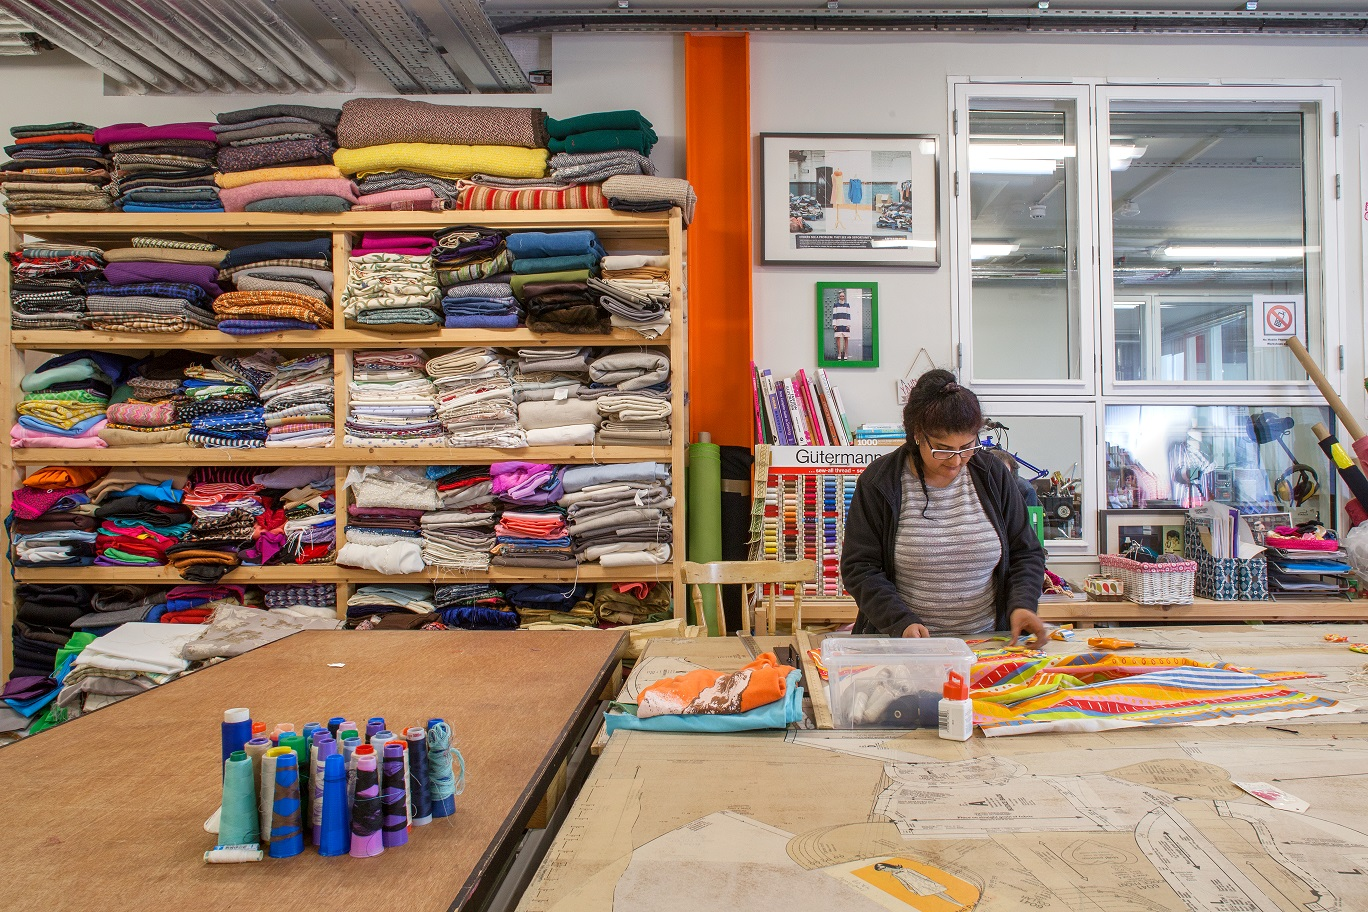 The Rediscovery Centre Fashion Workshop